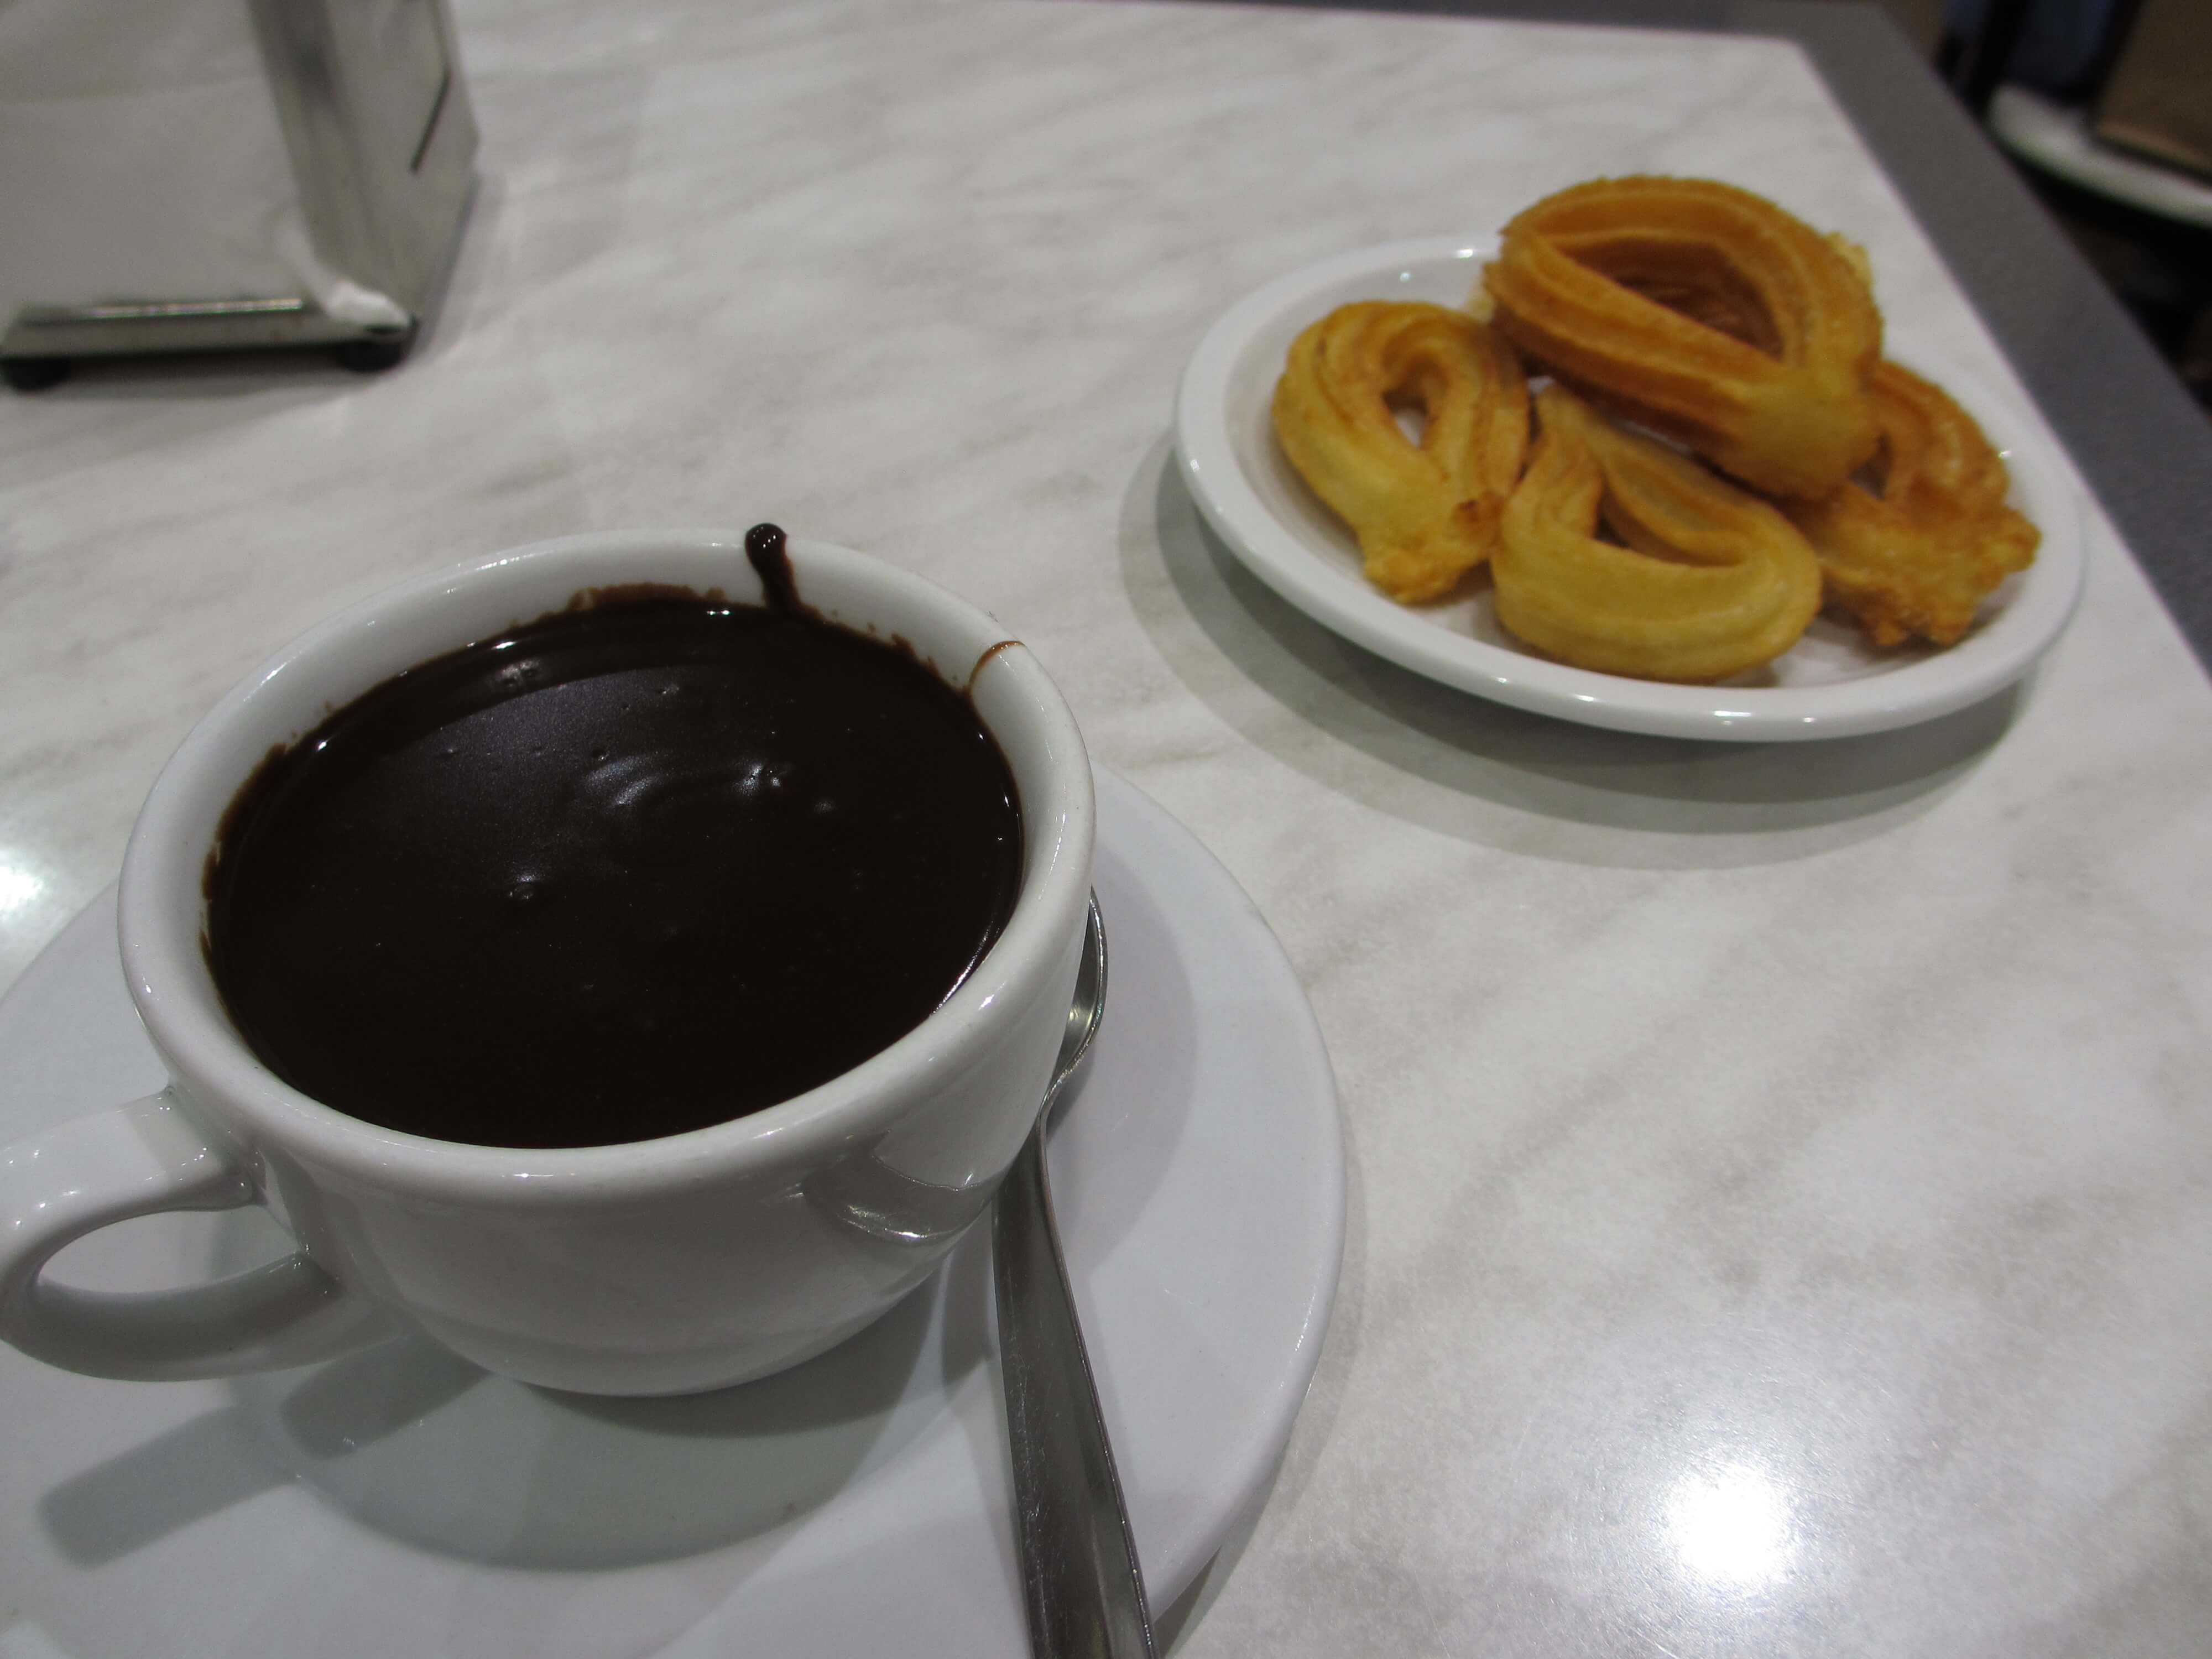 Don't forget to finish with a churros and chocolate - yum!